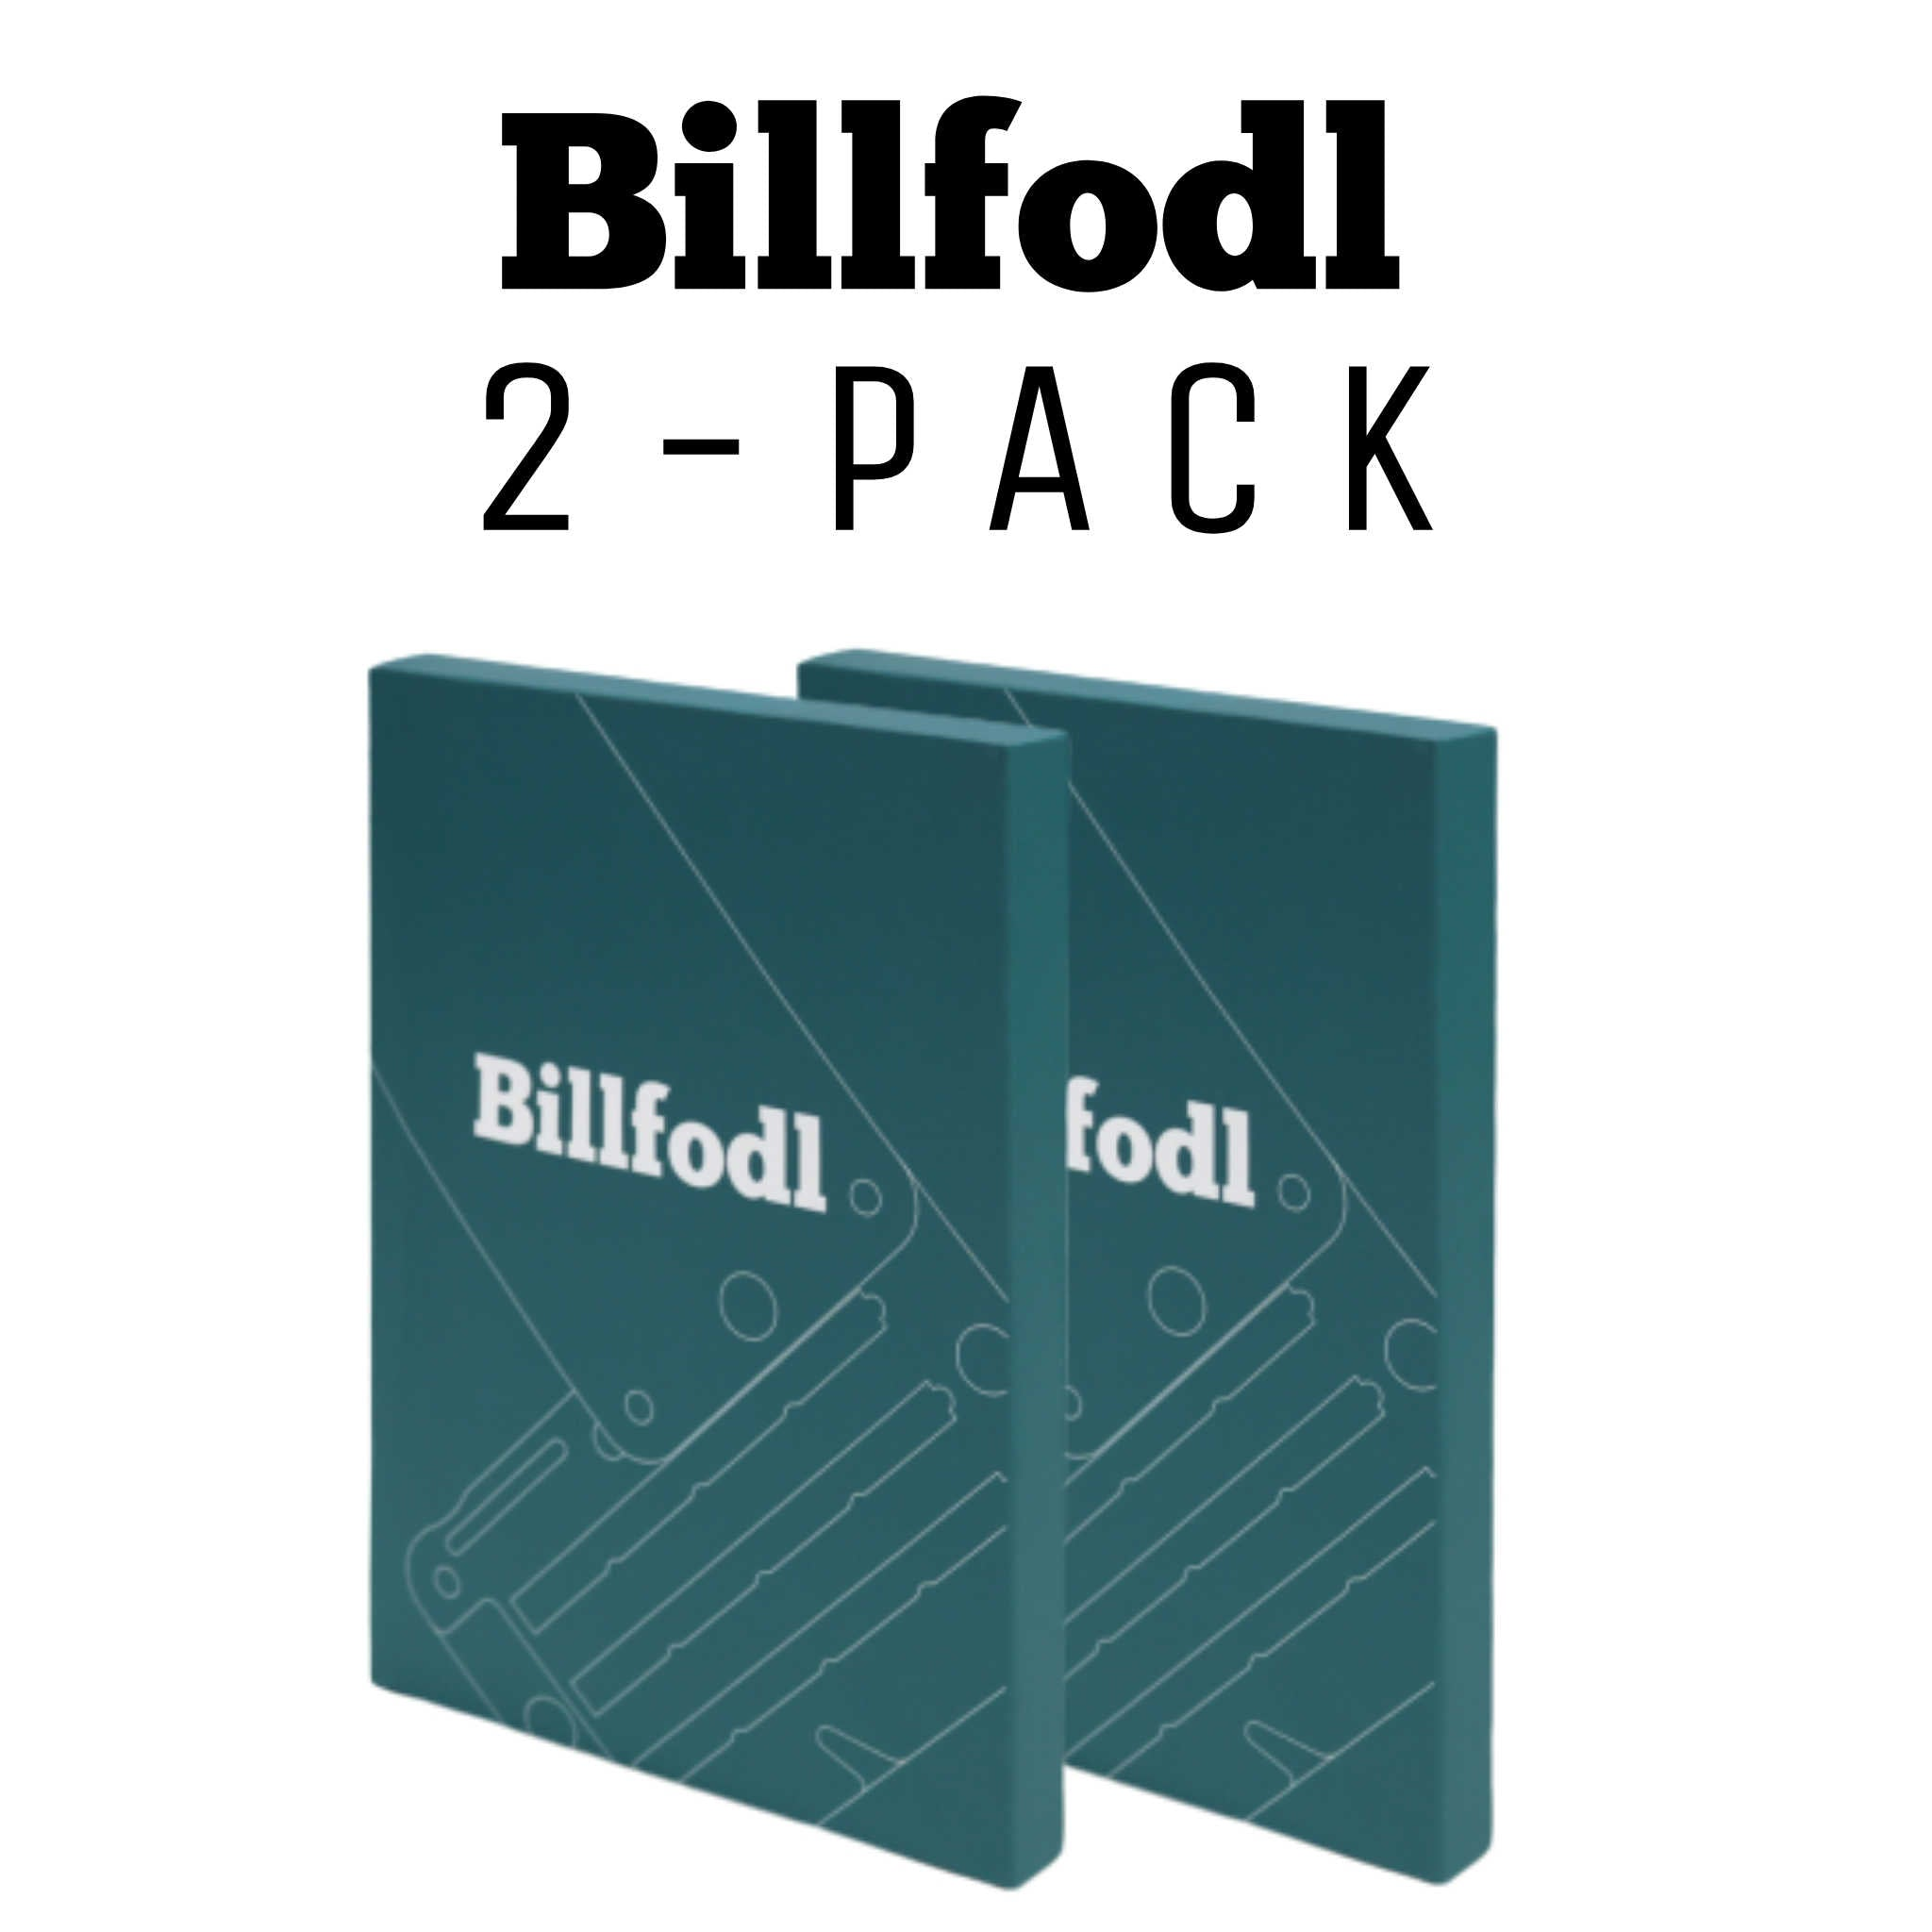 Billfodl 2-Pack Bundle